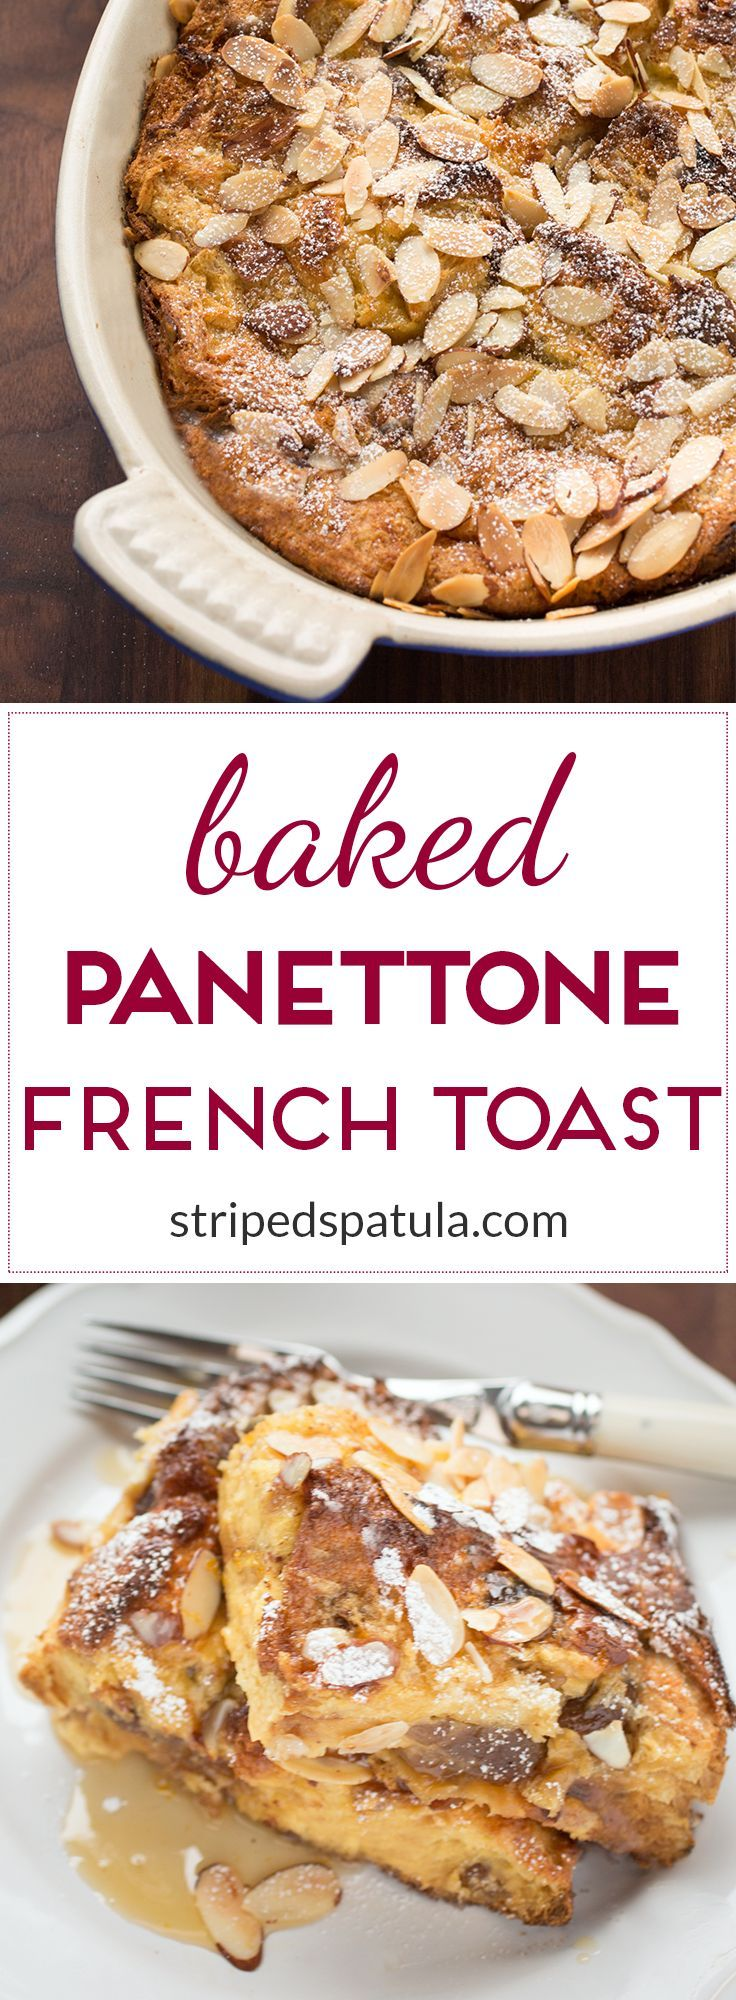 Panettone French Toast is an easy and delicious breakfast to celebrate the holiday season. Prep the night before and bake on Christmas morning!